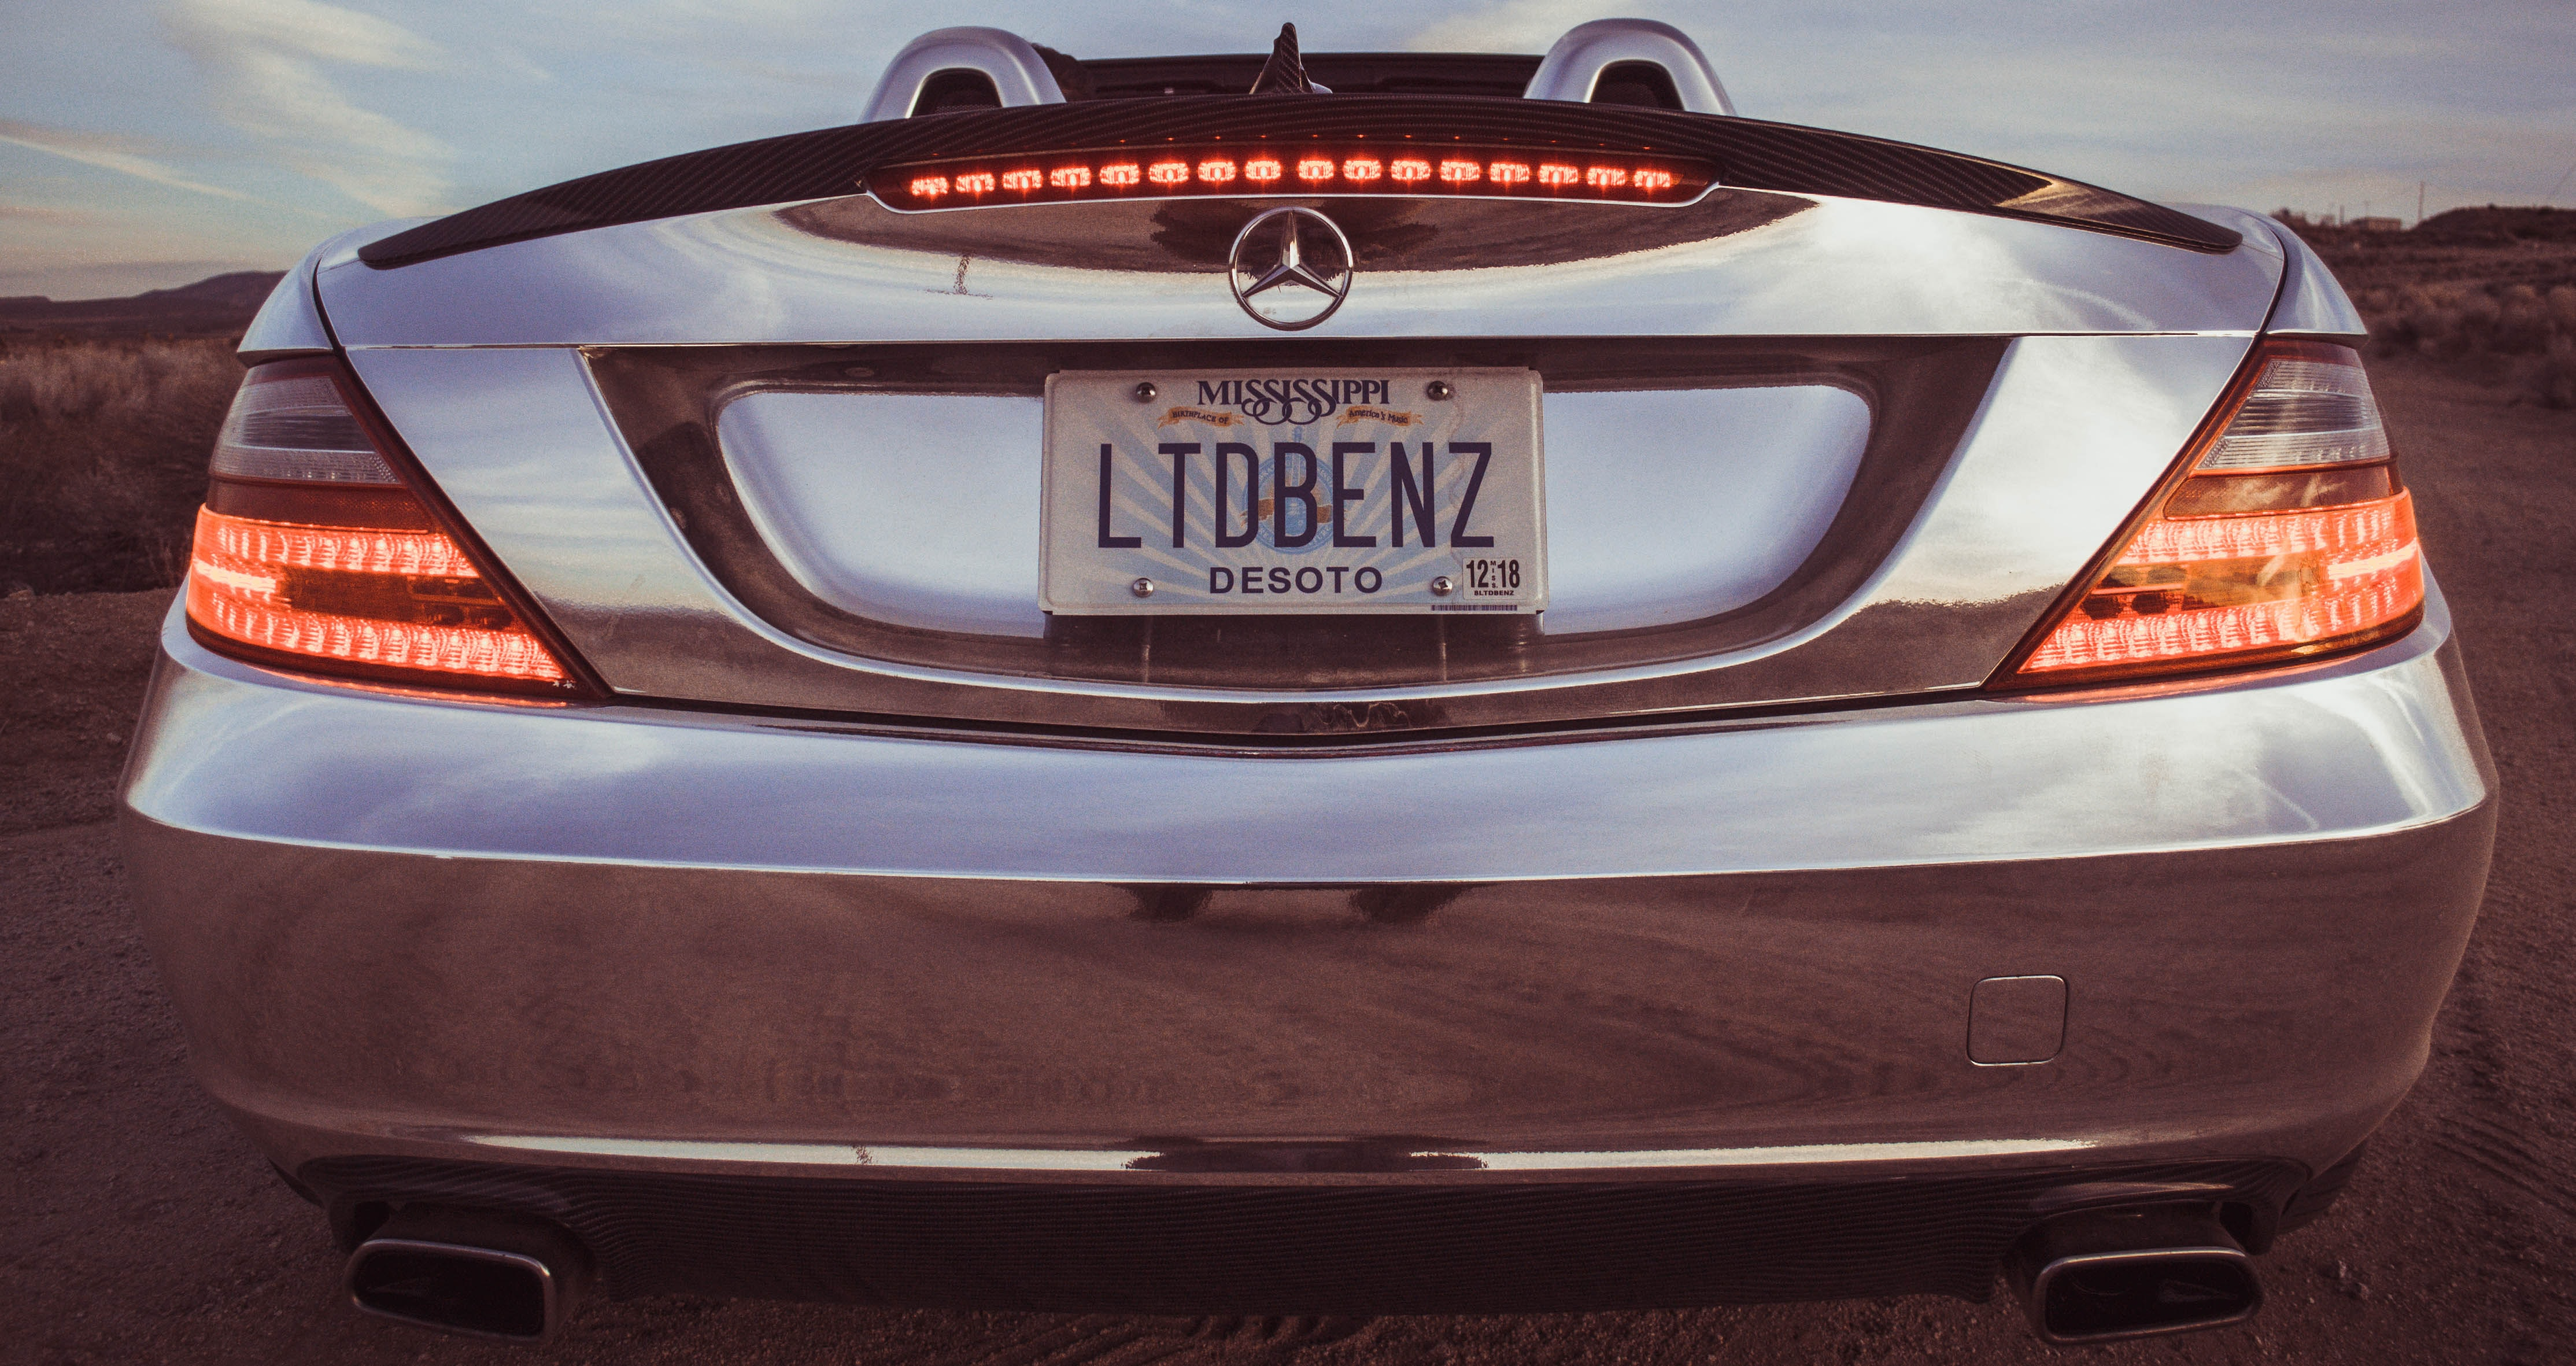 silver Mercedes-Benz car with LTDBENZ license plate